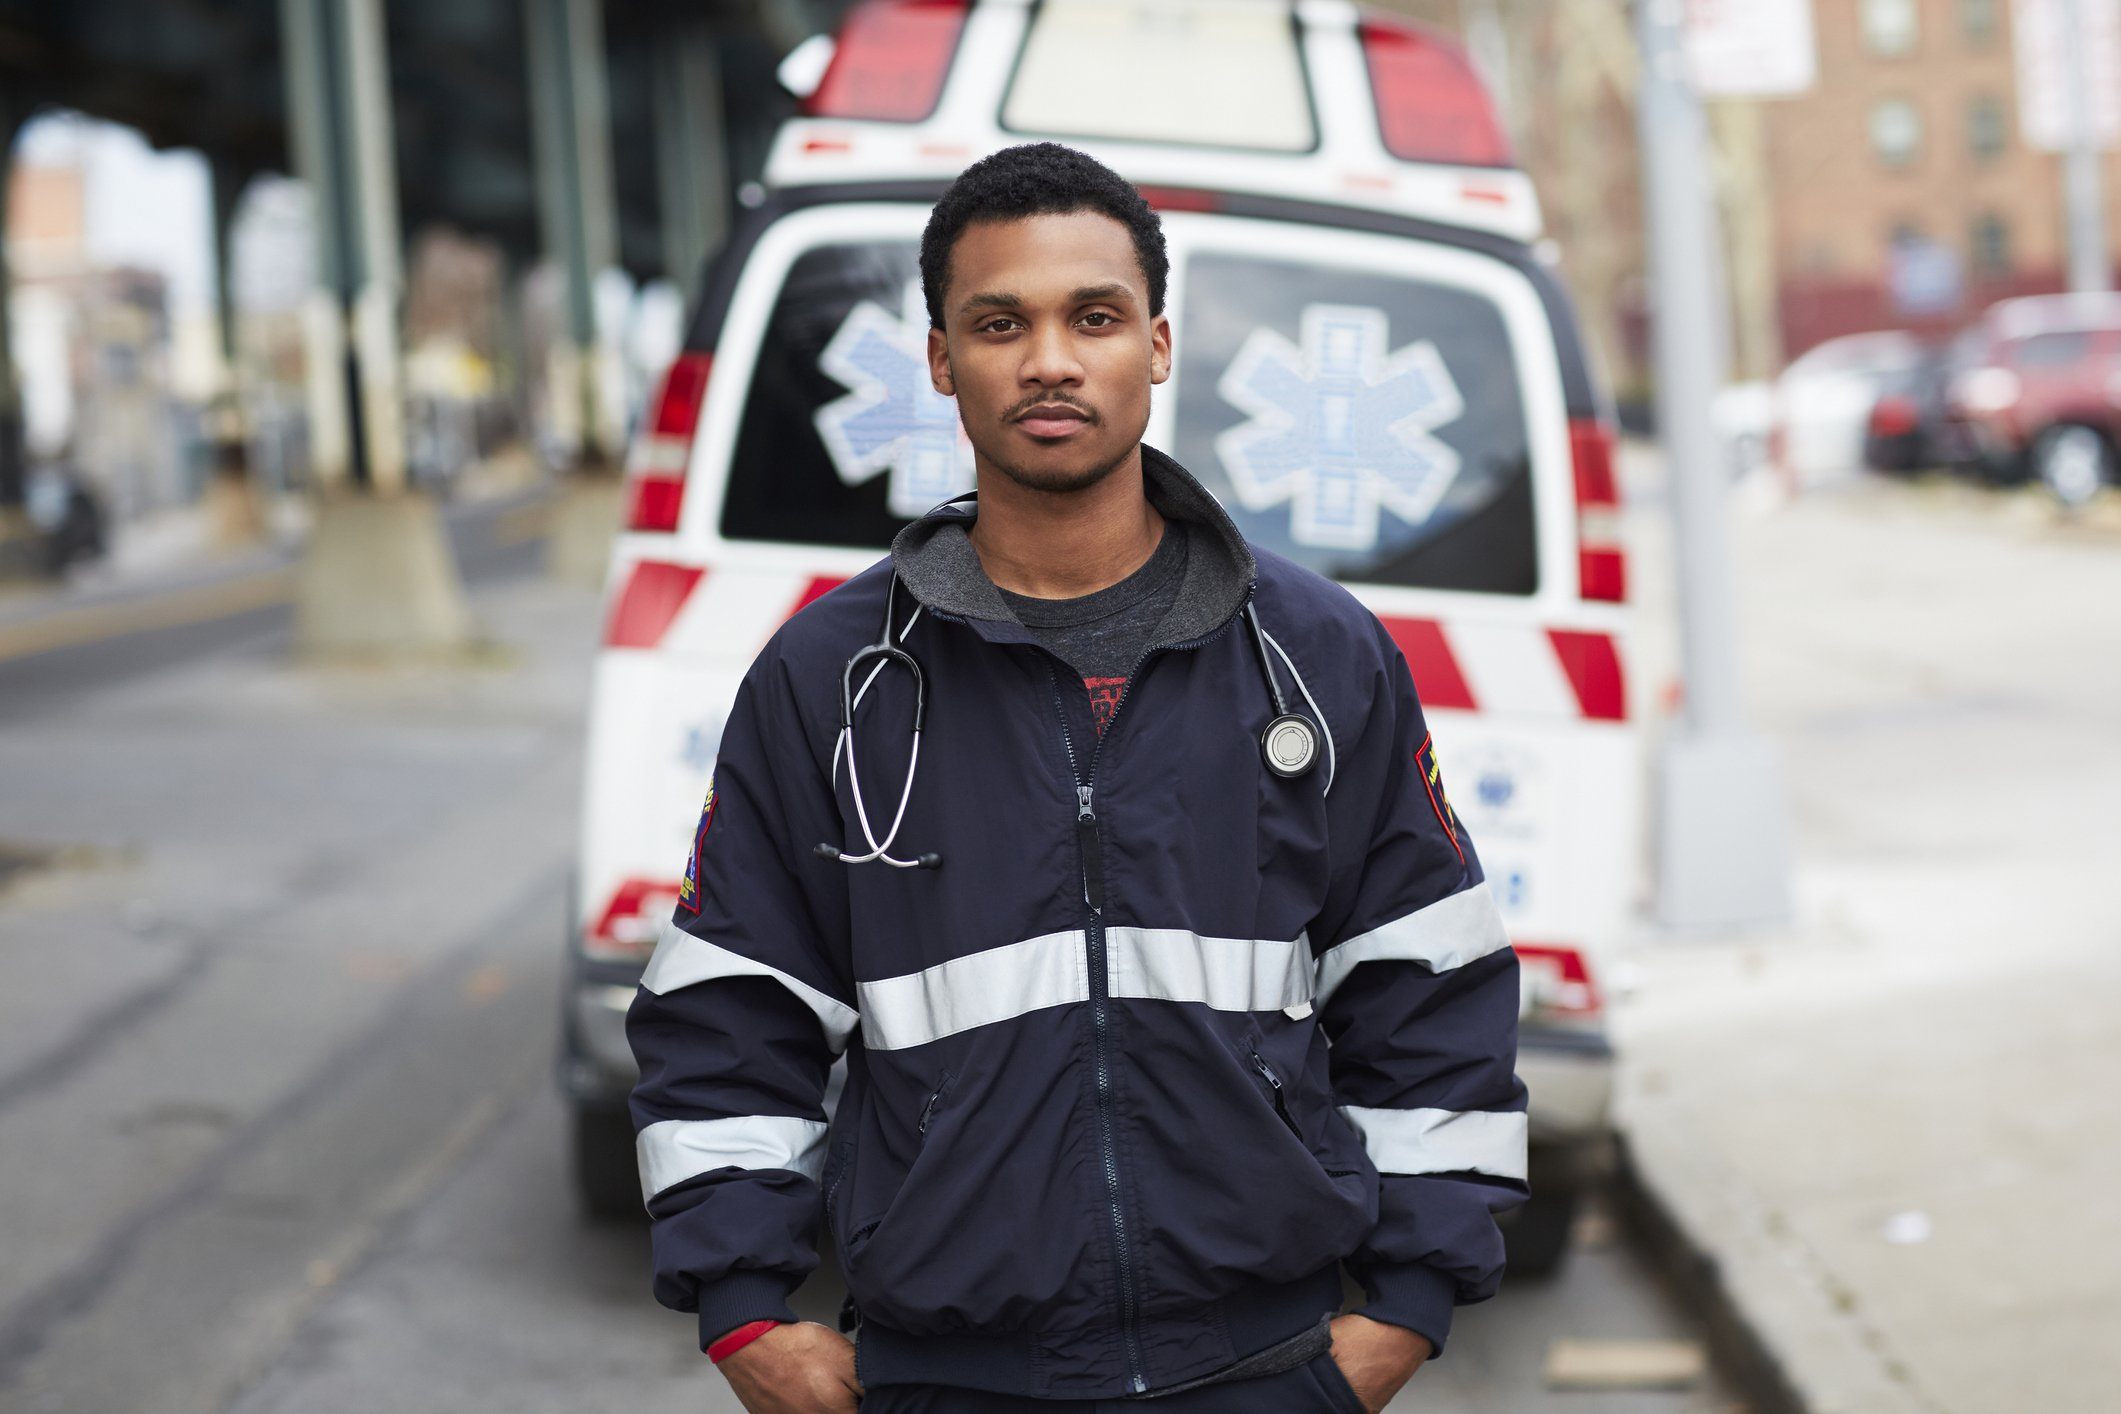 A picture of a male paramedic standing in front of an ambulance. | Photo: Getty Images